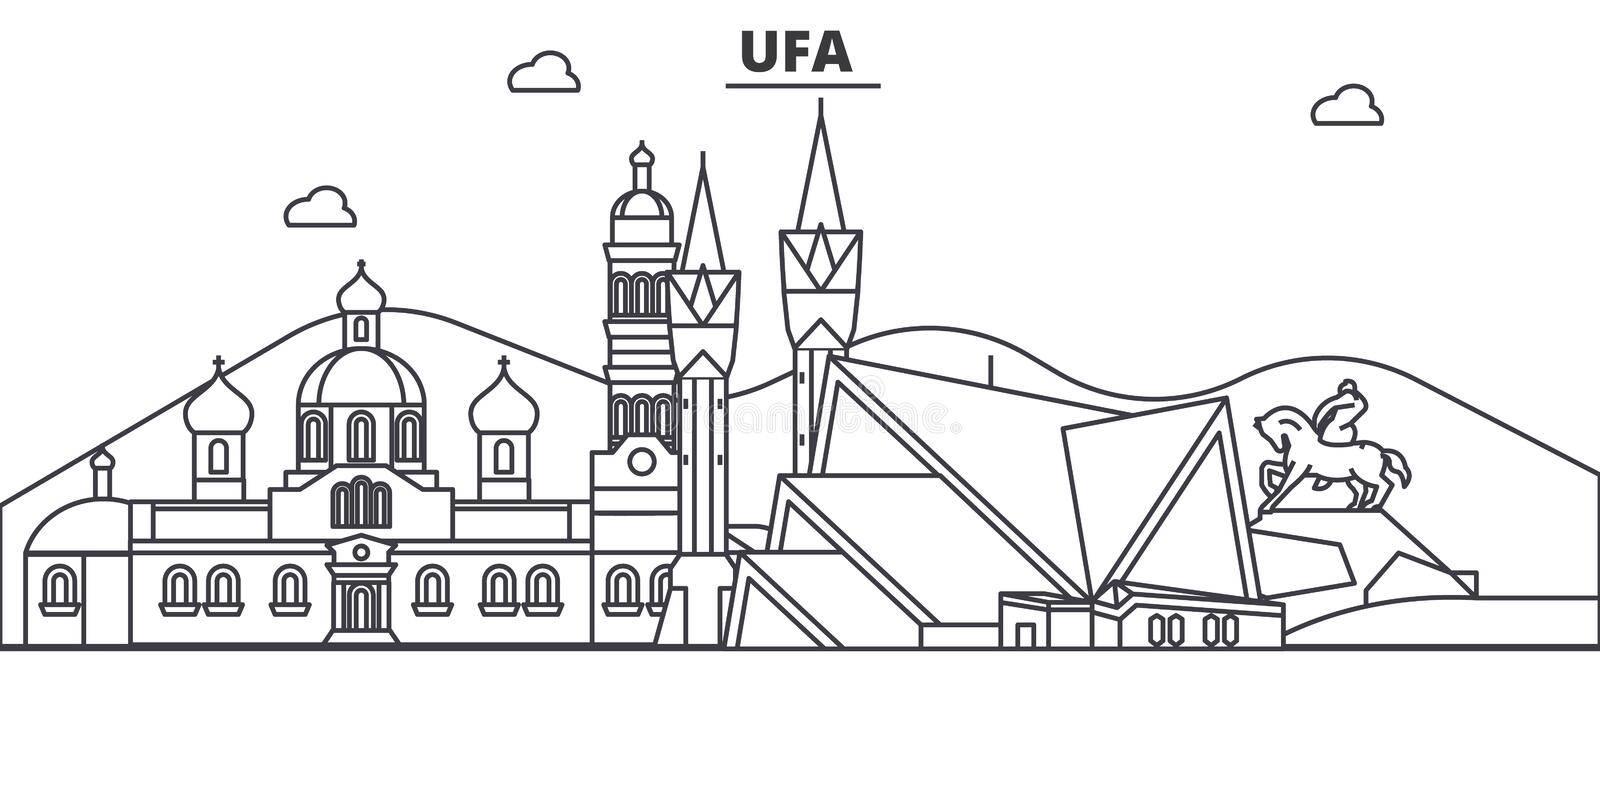 Russia, Ufa architecture line skyline illustration. Linear vector cityscape with famous landmarks, city sights, design. Icons. Editable strokes vector illustration